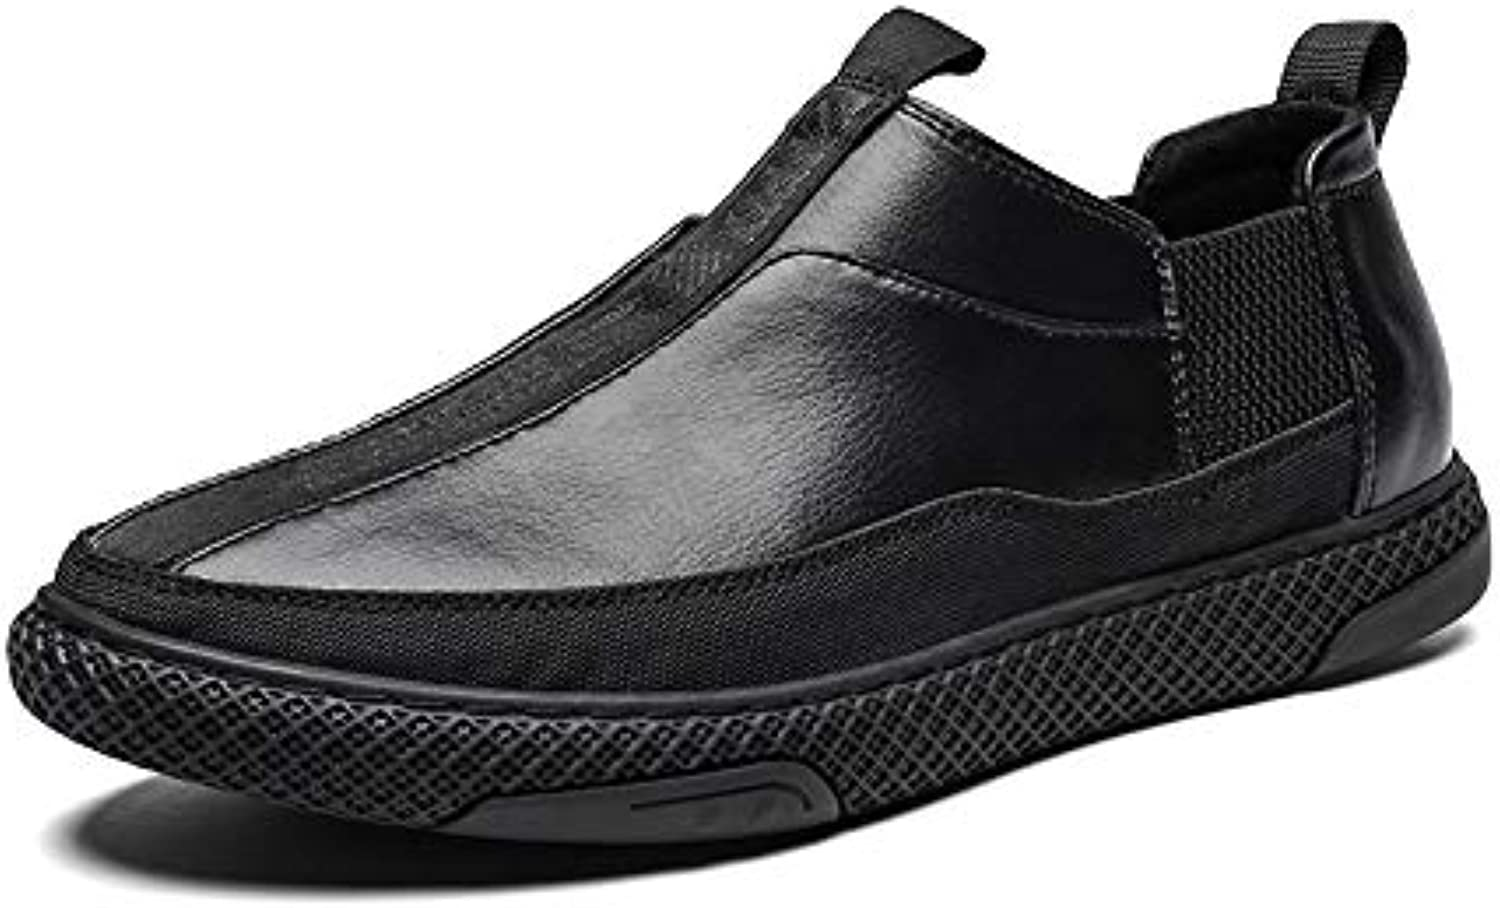 LOVDRAM Men's shoes New Men'S Low Top Layer Leather Casual shoes Non-Slip Lightweight Comfortable Fashion Sports shoes